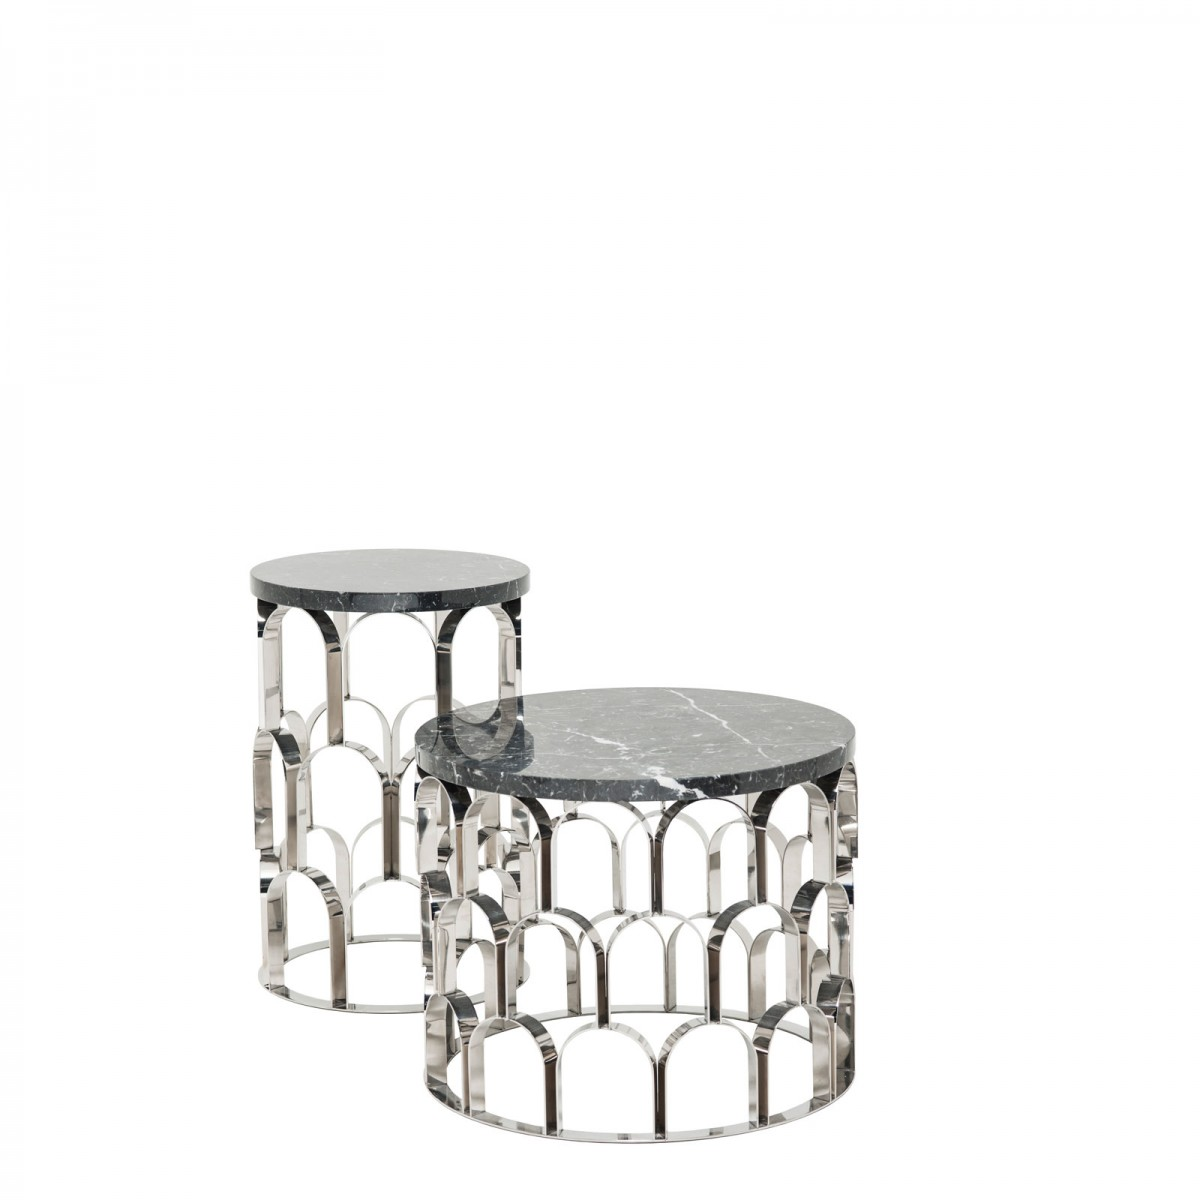 Ginger & Jagger's iconic Ananaz | Side Tables.